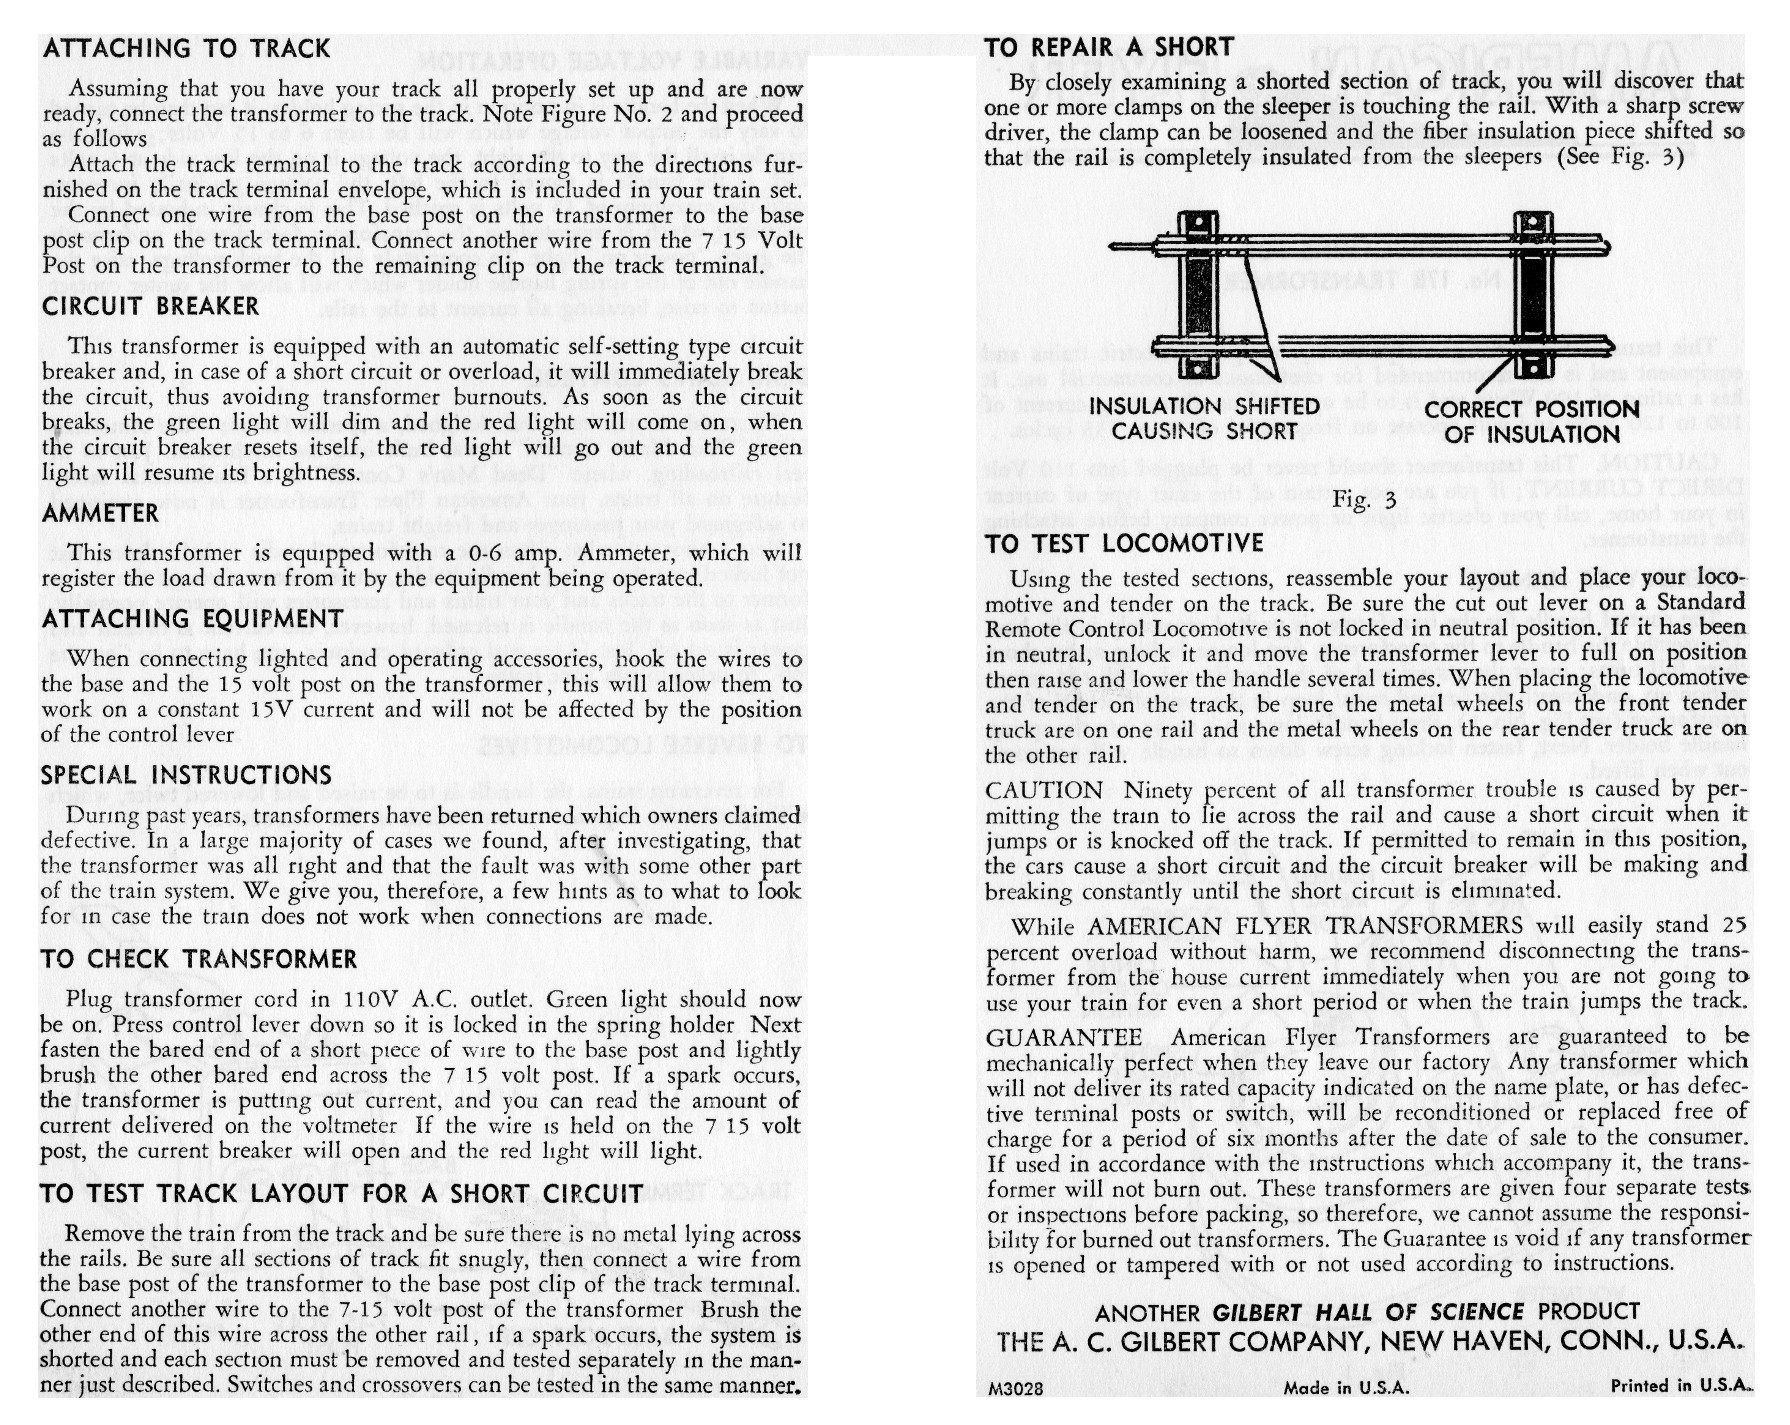 Instructions for No. 17B Transformer - Page 2